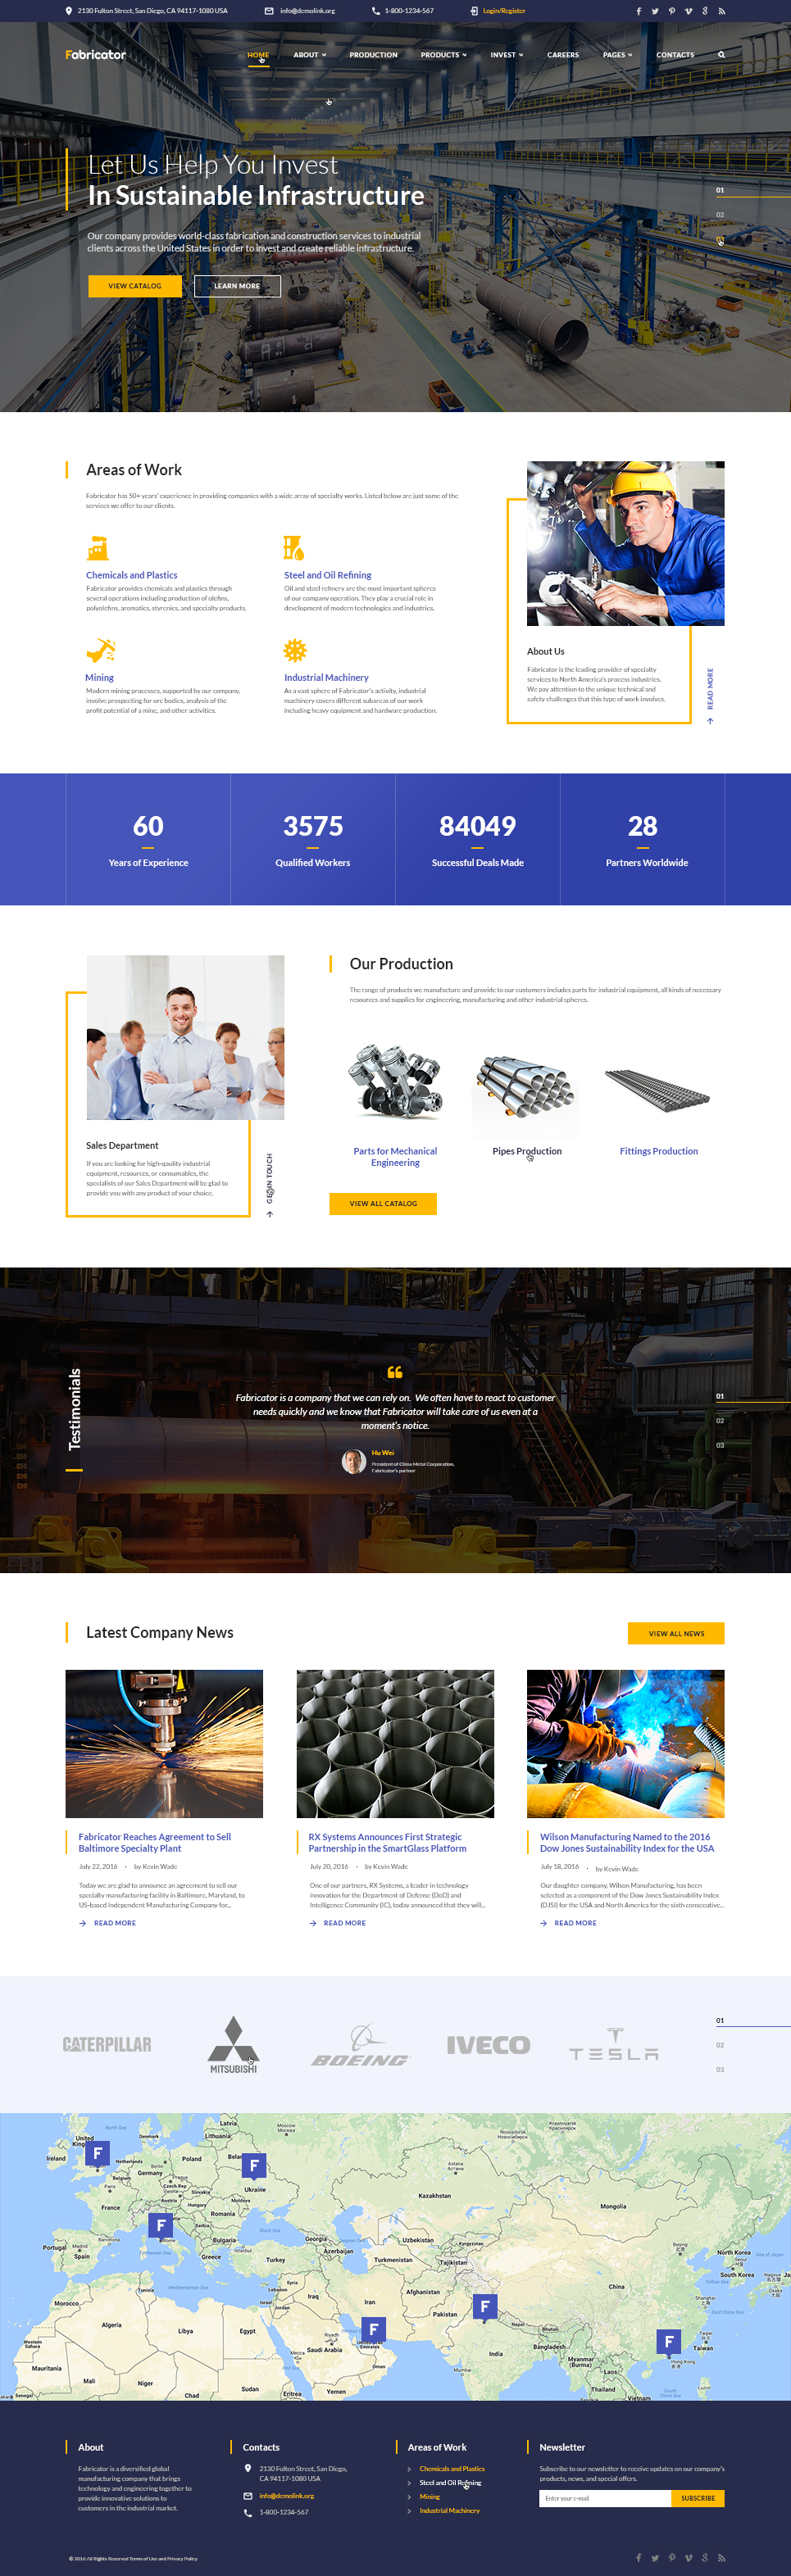 Fabricator - Industrial Company Multipage Template Web №60101 - captura de tela